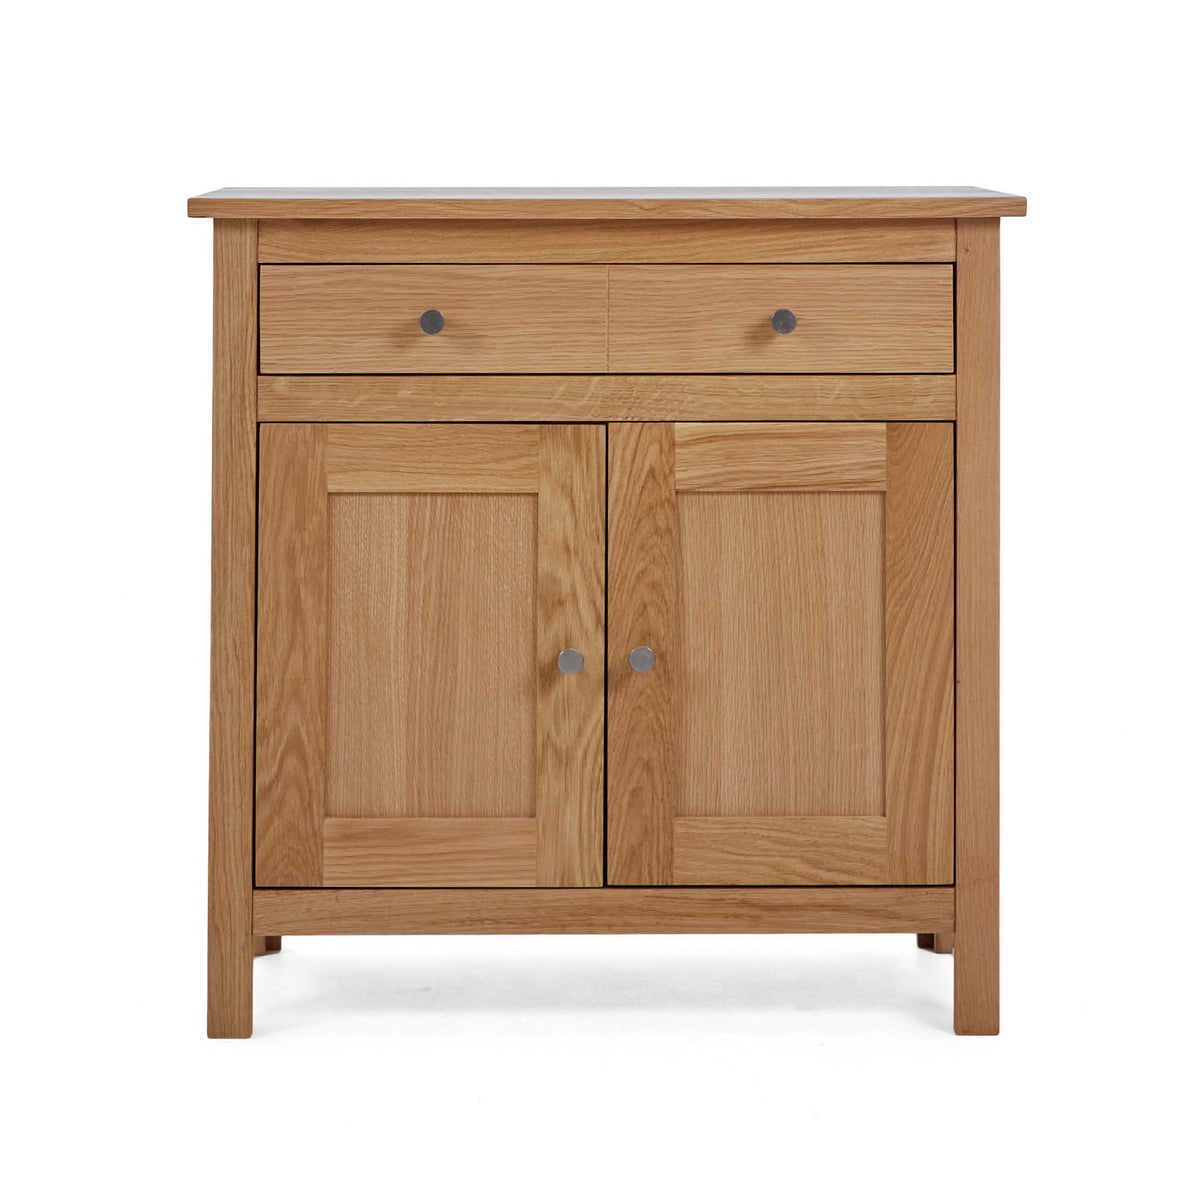 Front view of the Falmouth Oak Mini Sideboard by Roseland Furniture